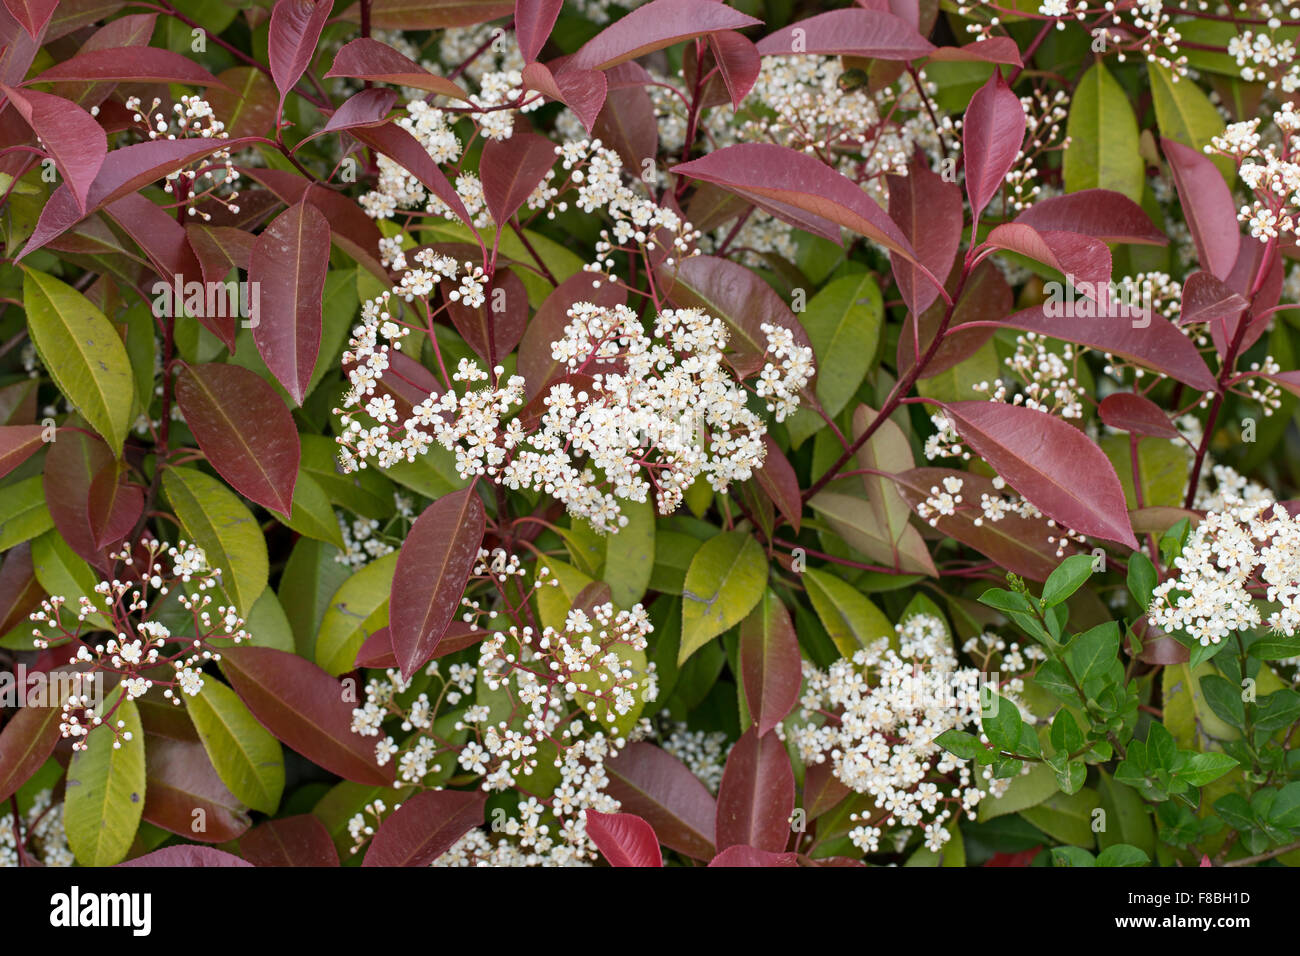 photinia fraseri red robin stockfotos photinia fraseri red robin bilder alamy. Black Bedroom Furniture Sets. Home Design Ideas